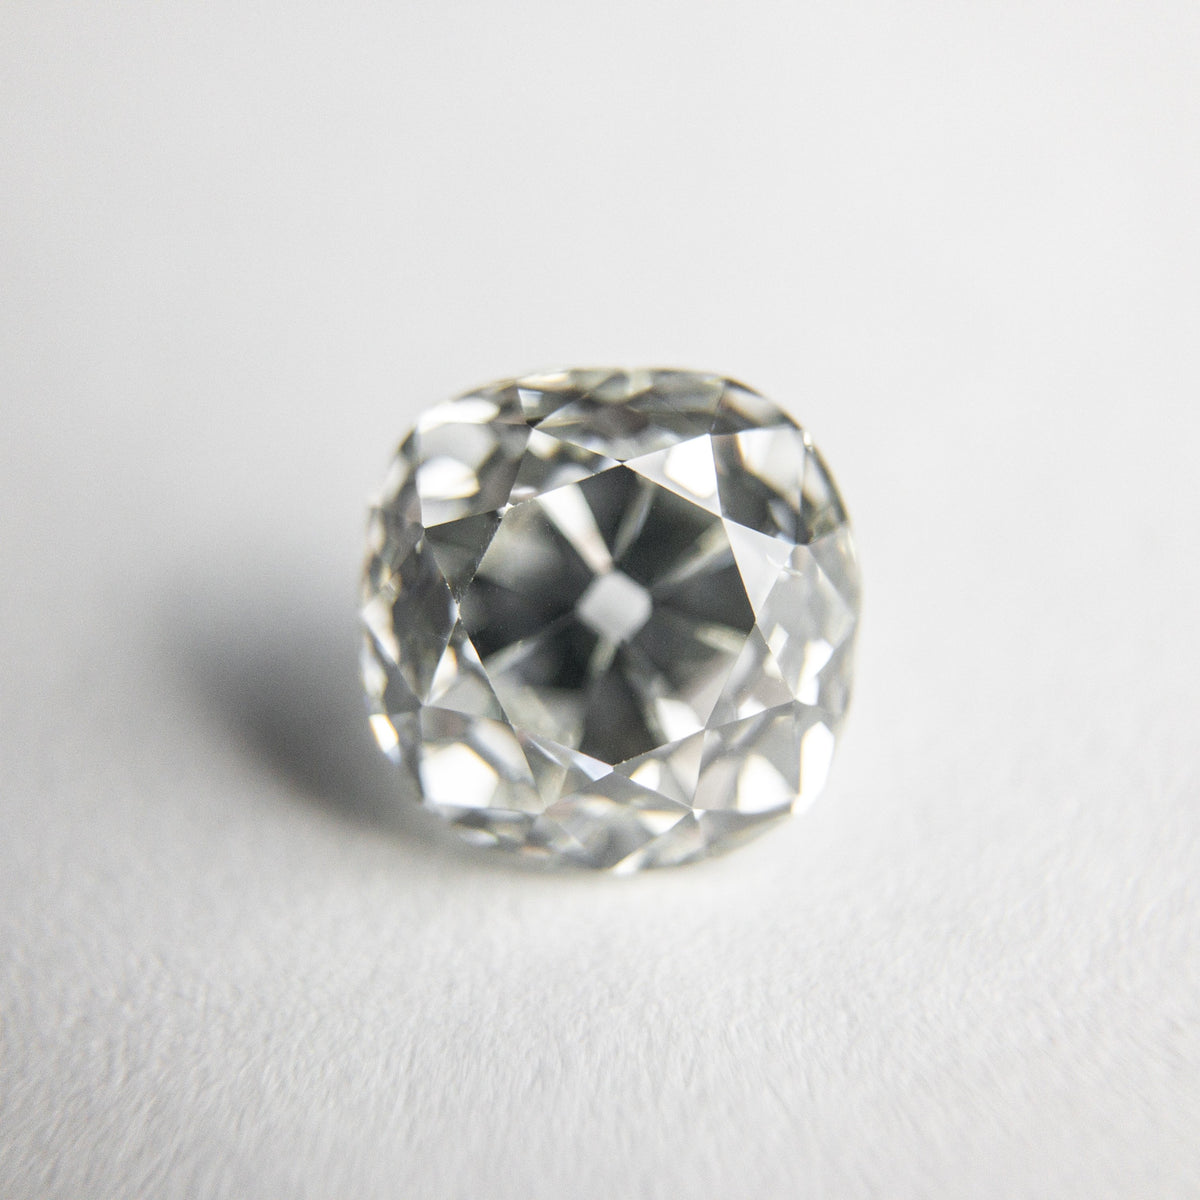 1.83ct 7.07x7.04x5.13mm GIA SI1 H Antique Old Mine Cut 18397-01